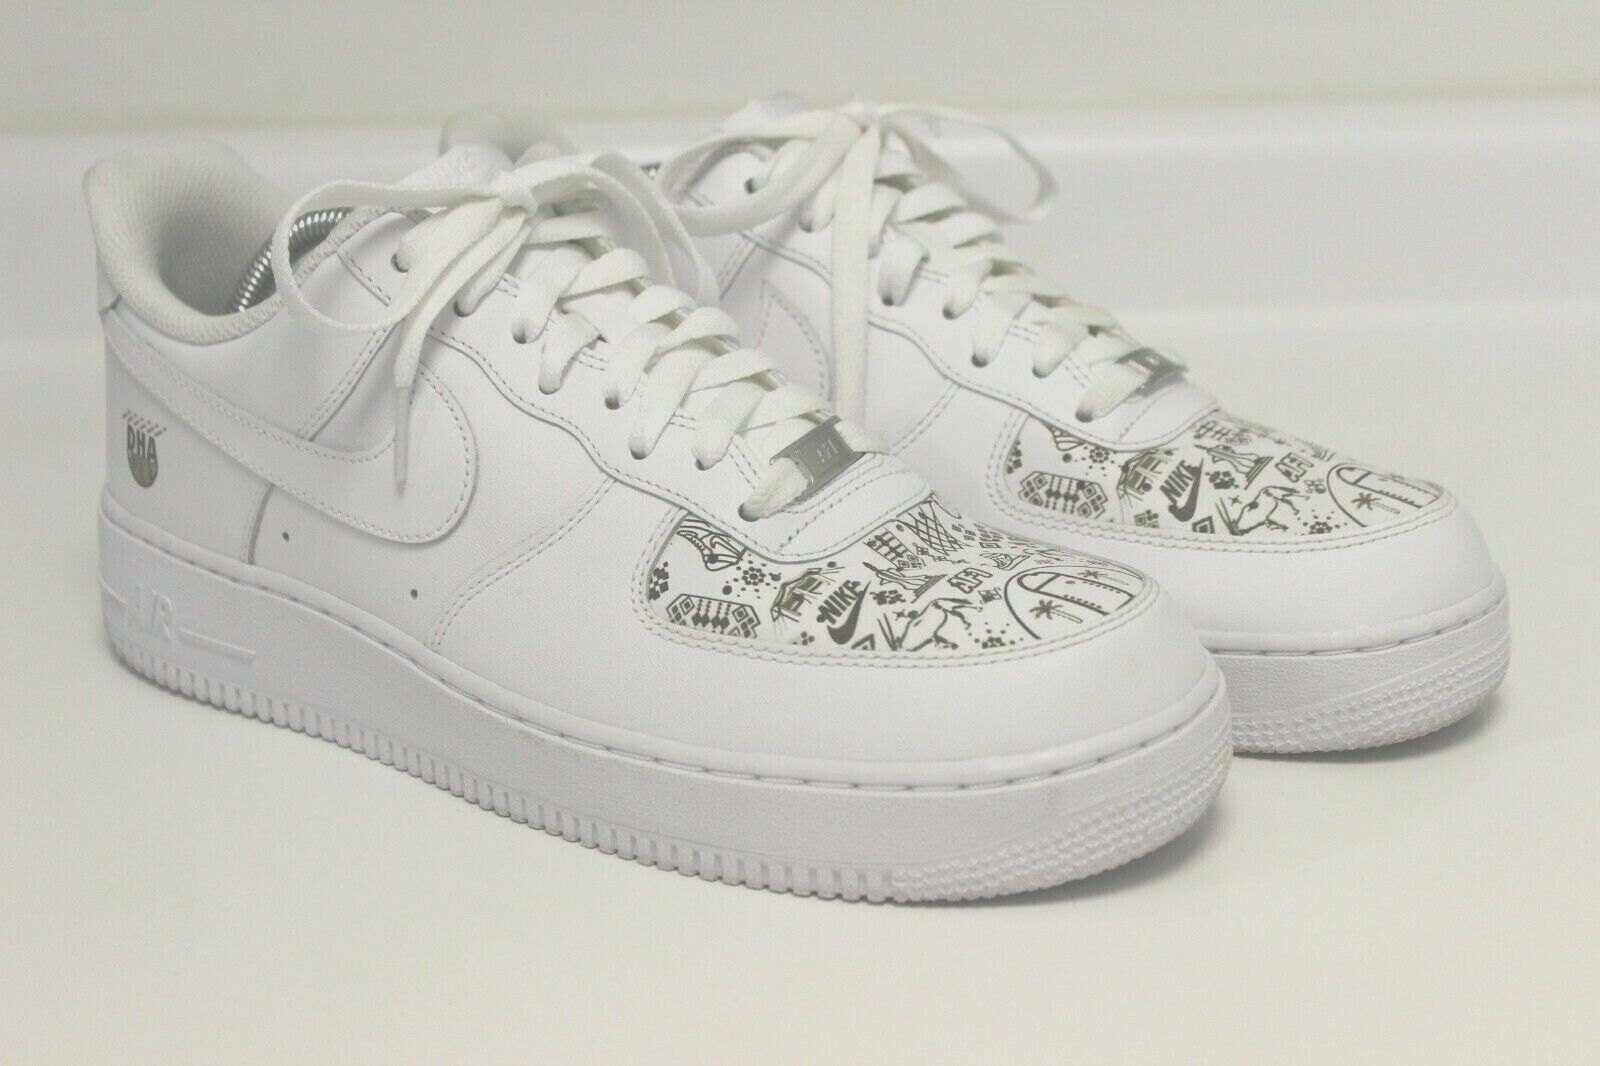 NIKE AIR FORCE 1 LOW MENS WHITE LASER DHAHRAN EXCLUSIVE SIZE 10.5